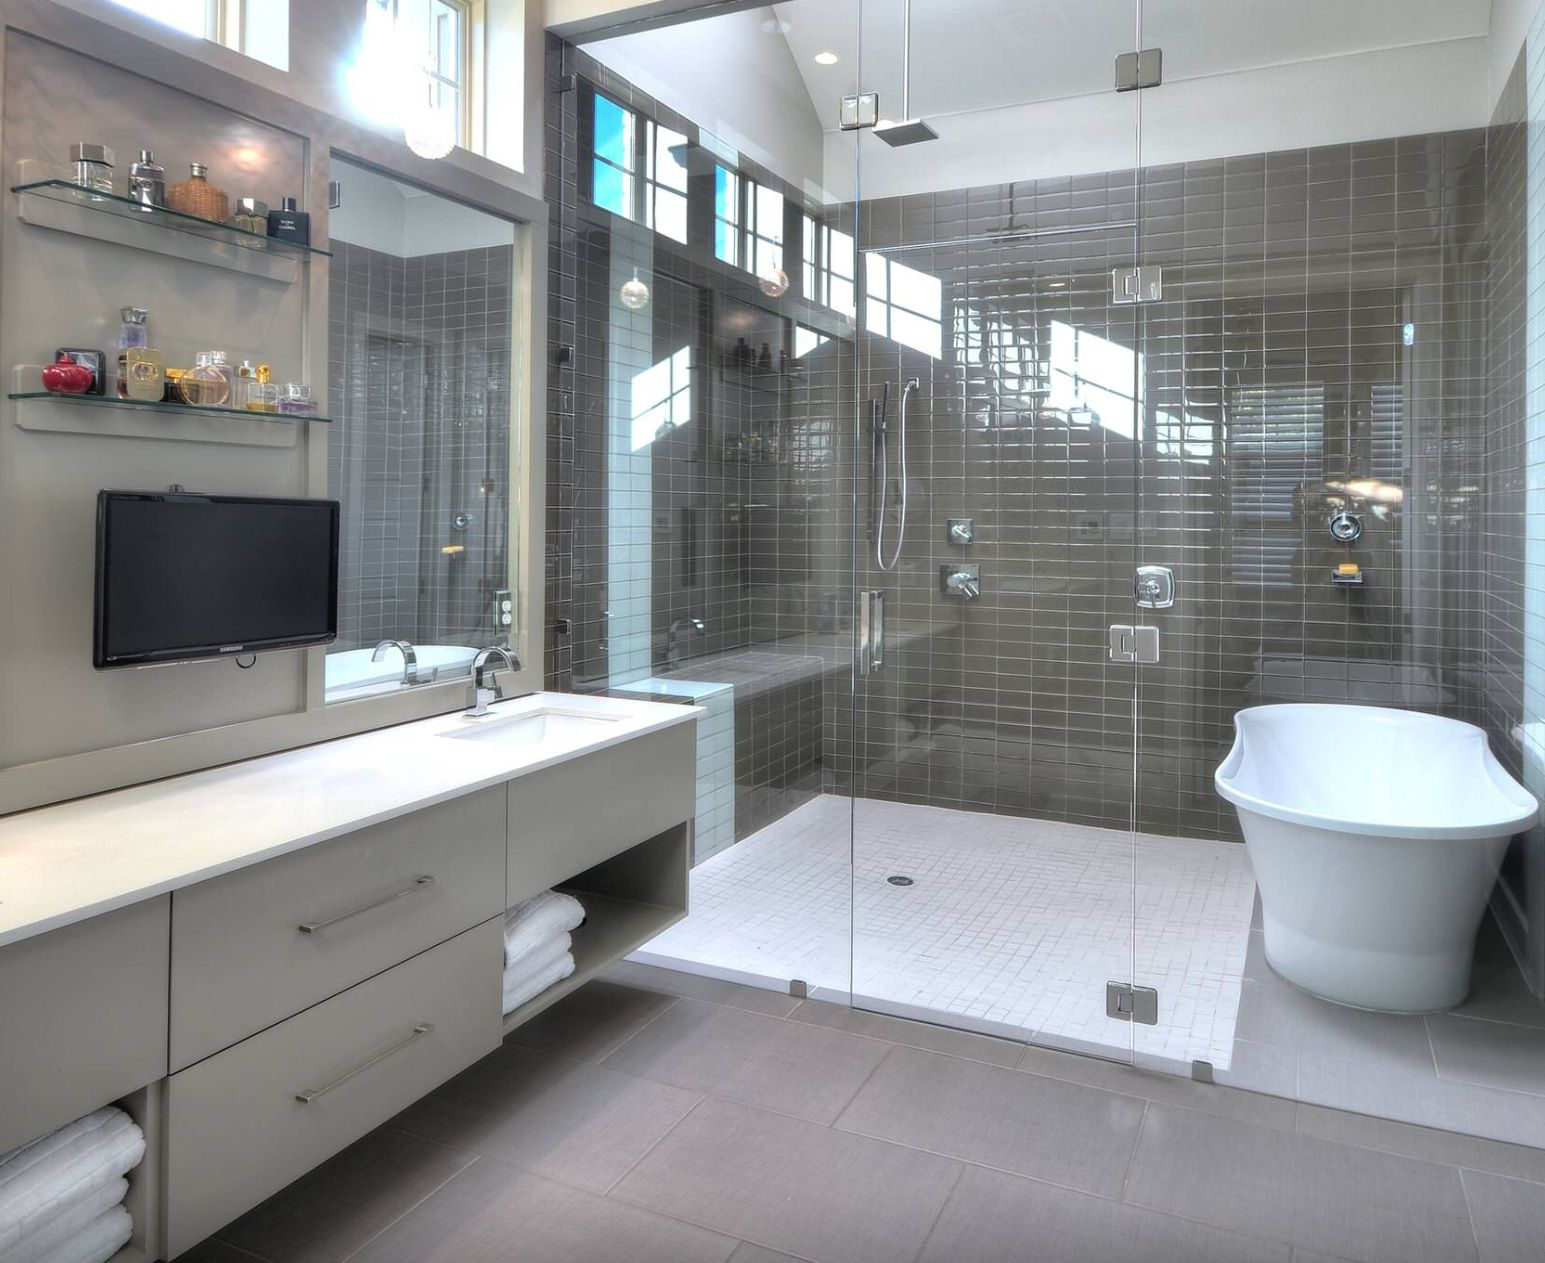 Combo tub shower wet room bathrooms pinterest wet for Bathrooms for small areas